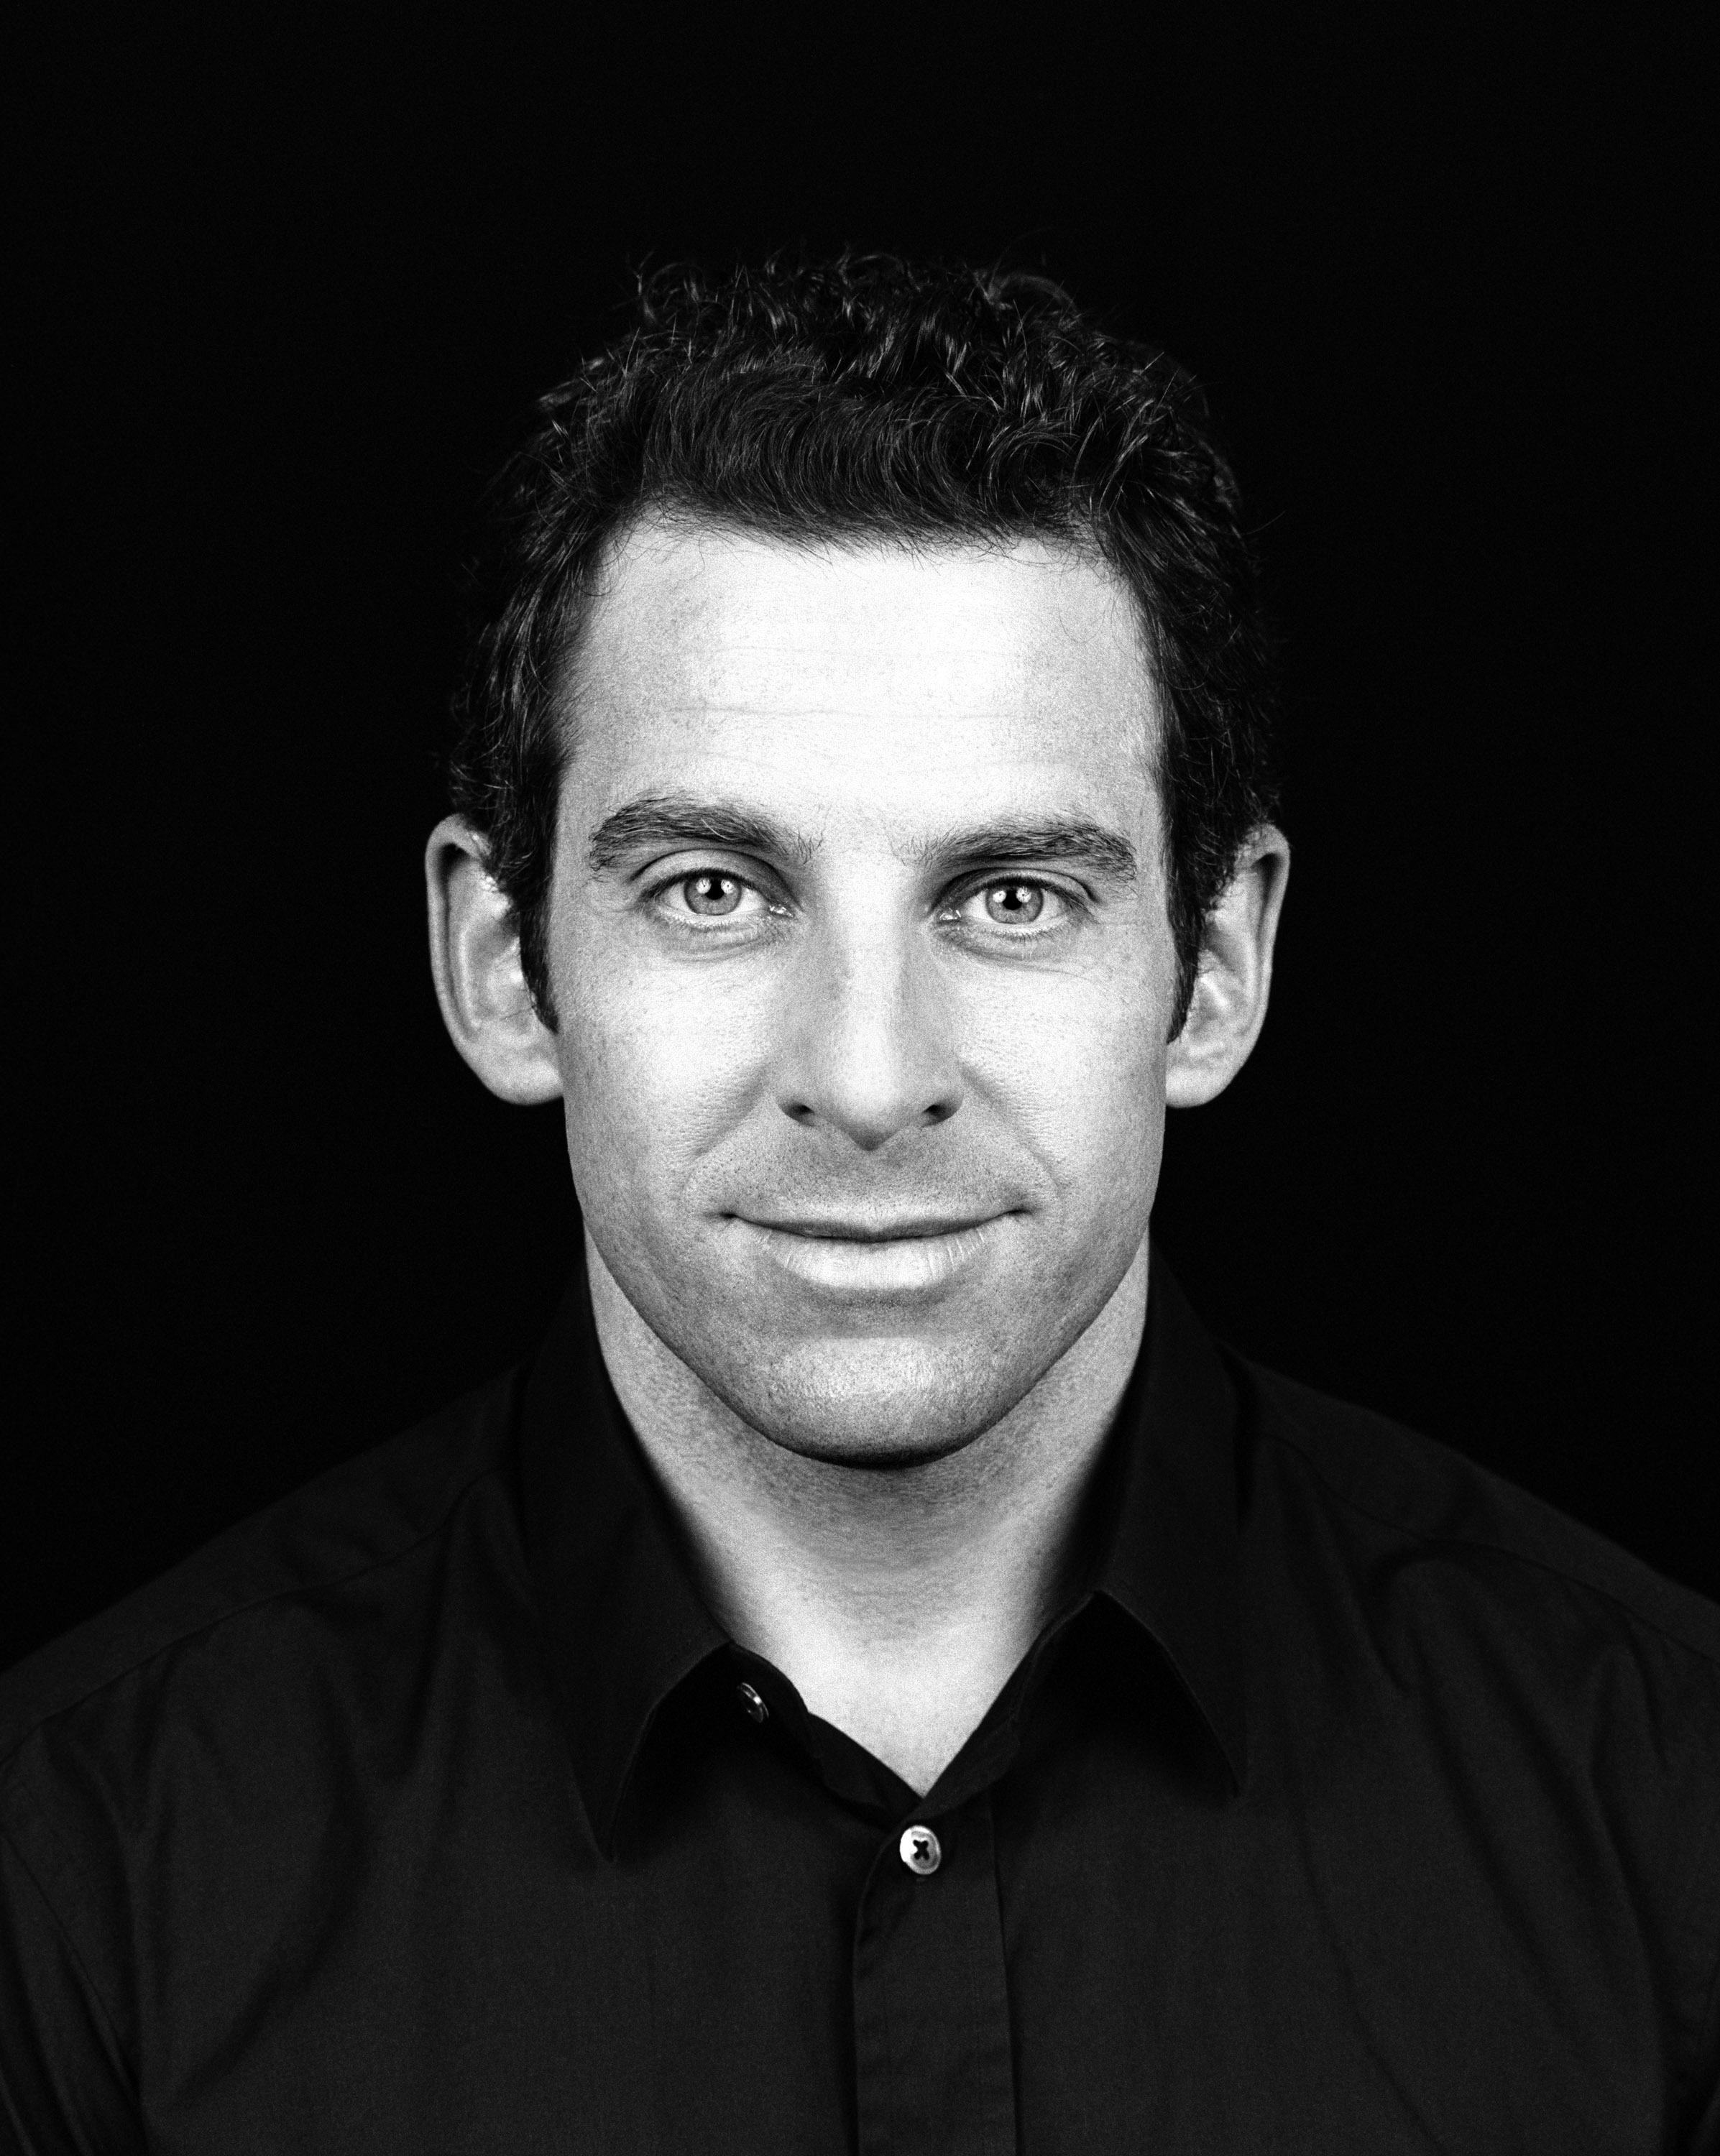 English: Sam Harris